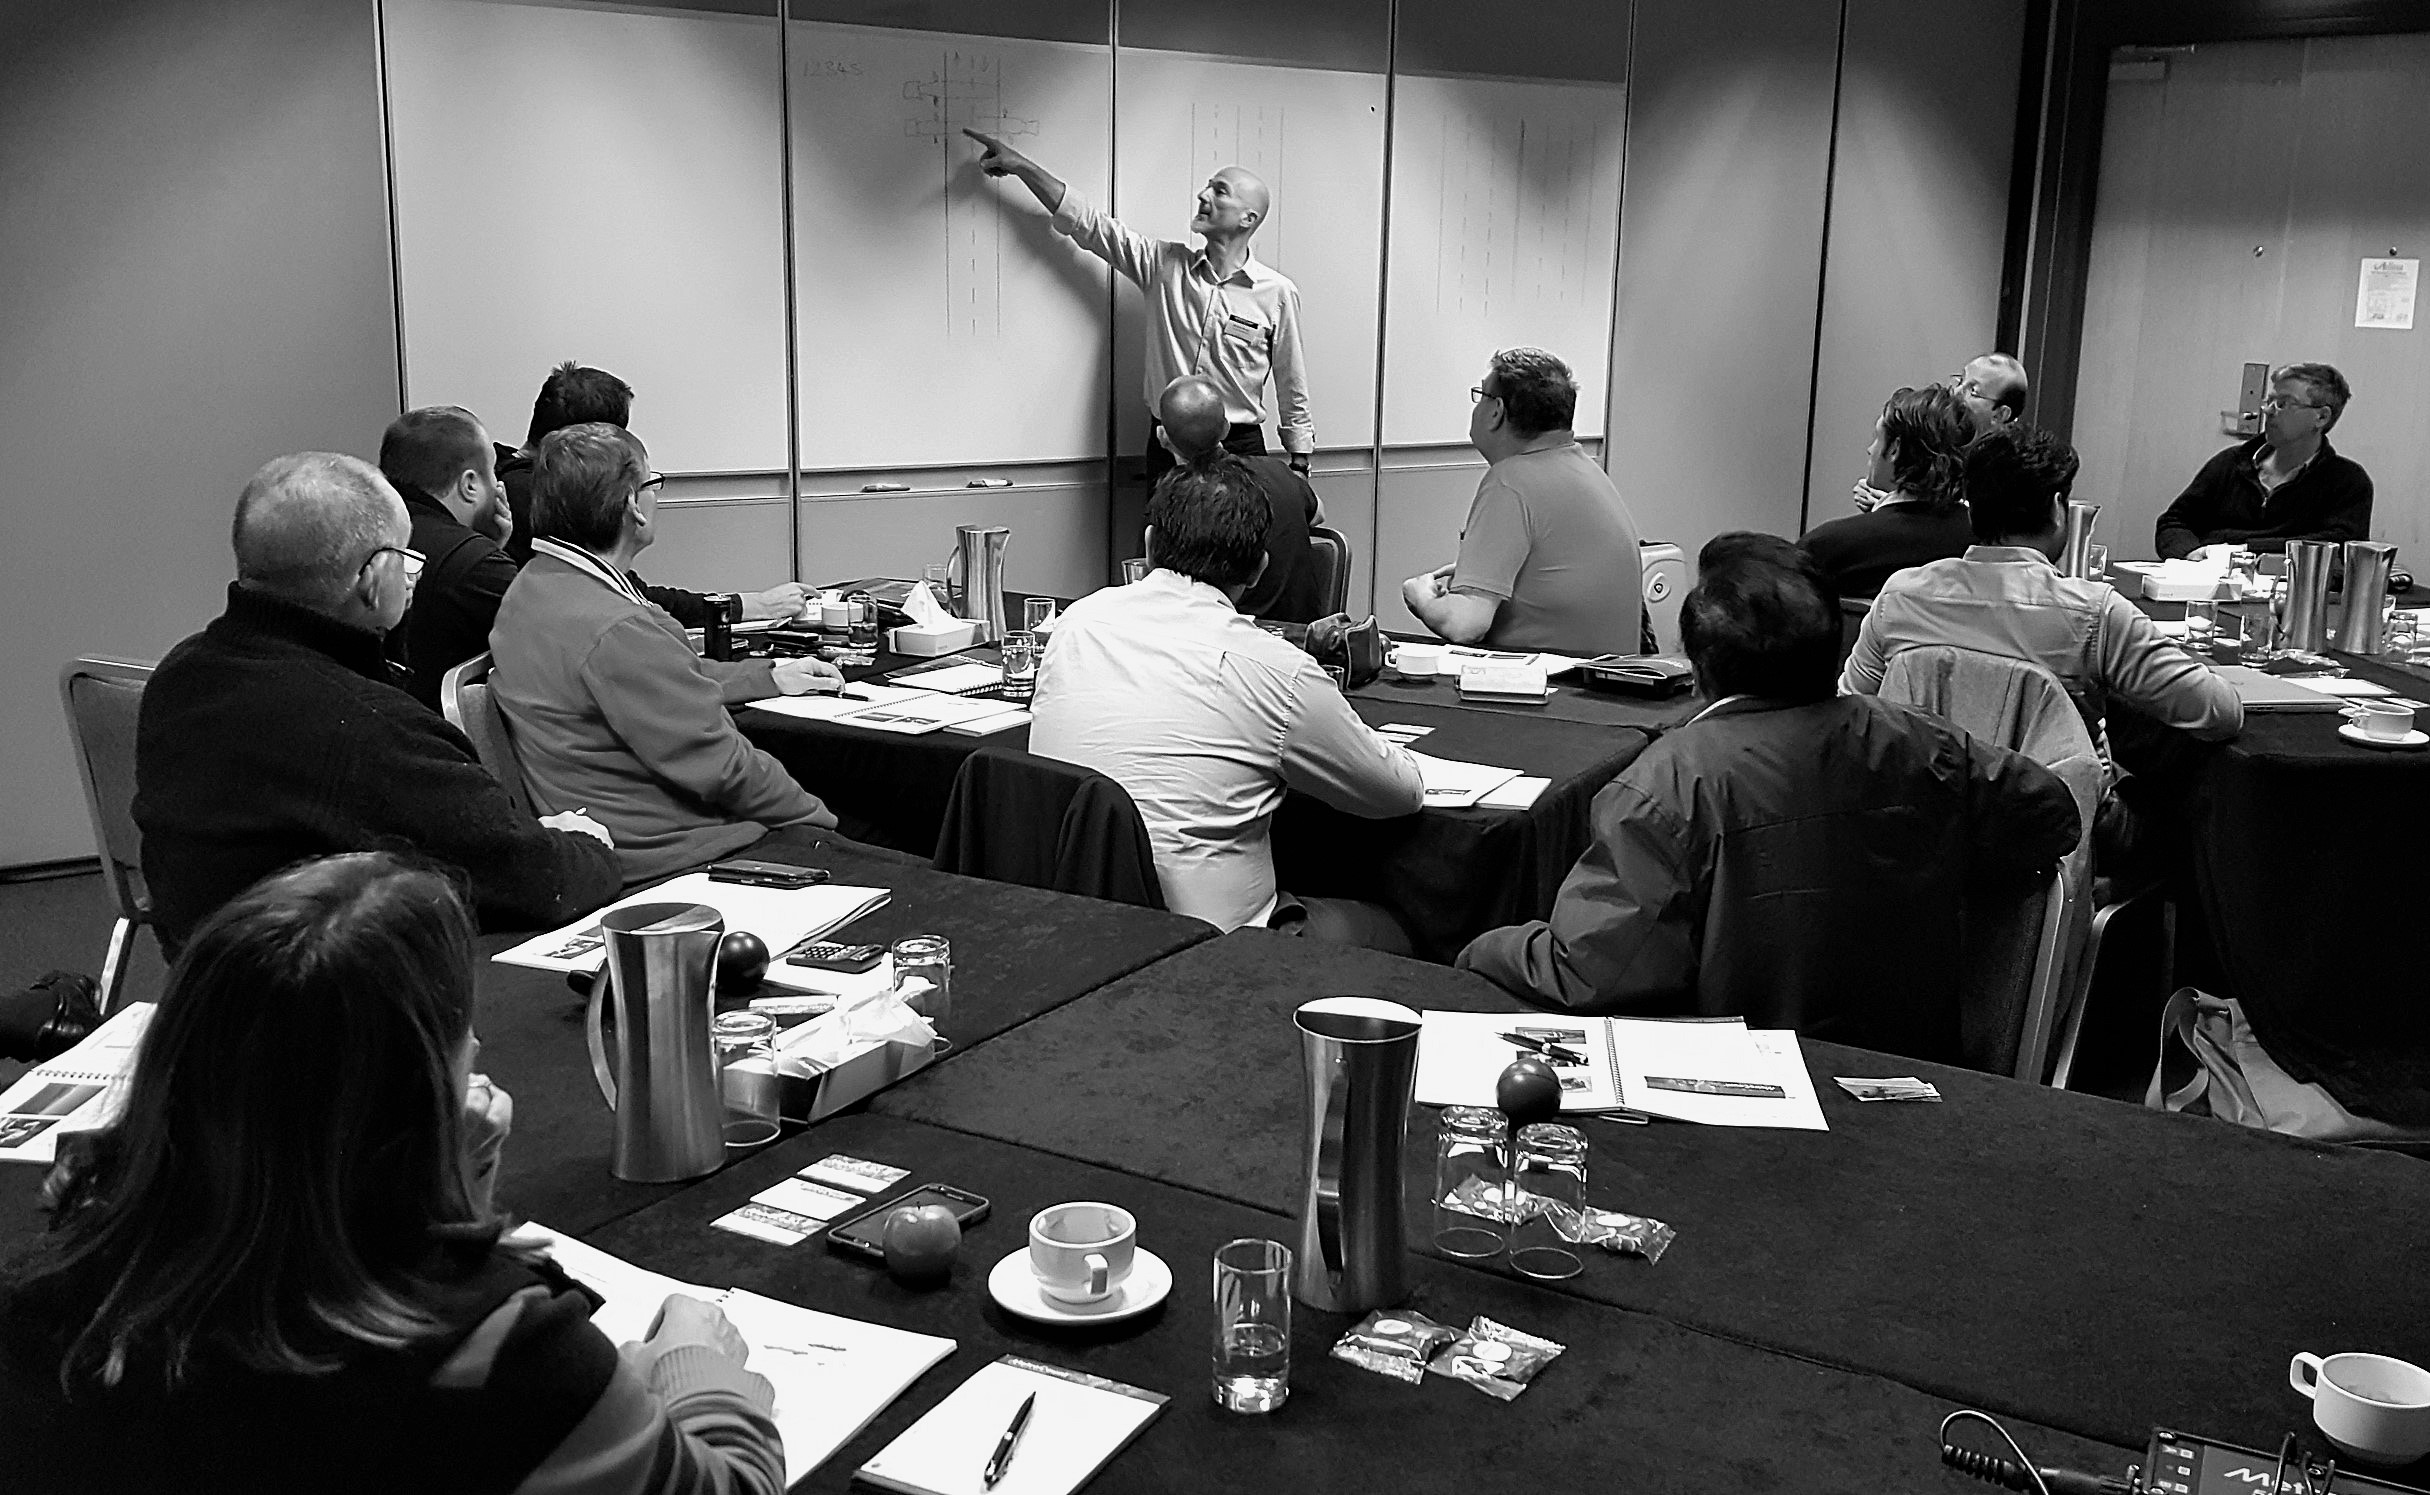 MetroCount training days - Maurice Berger, Melbourne